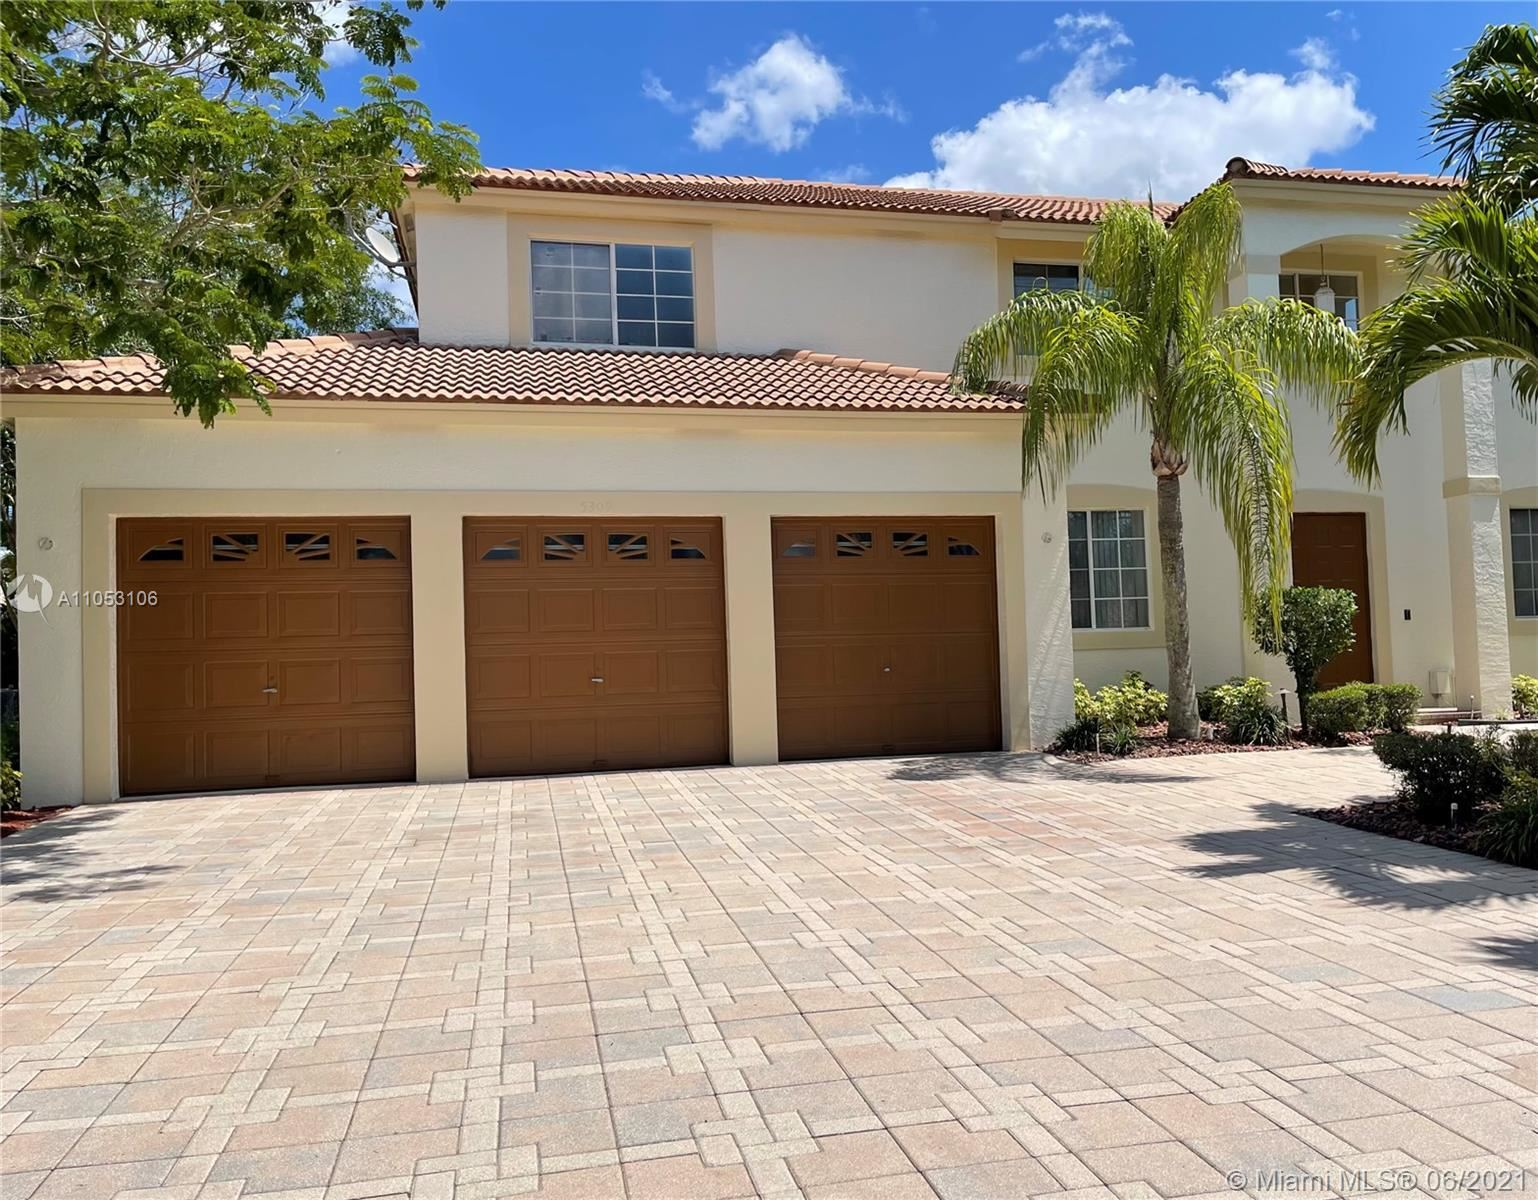 5309 NW 110th Ave, Coral Springs, FL 33076 - #: A11053106